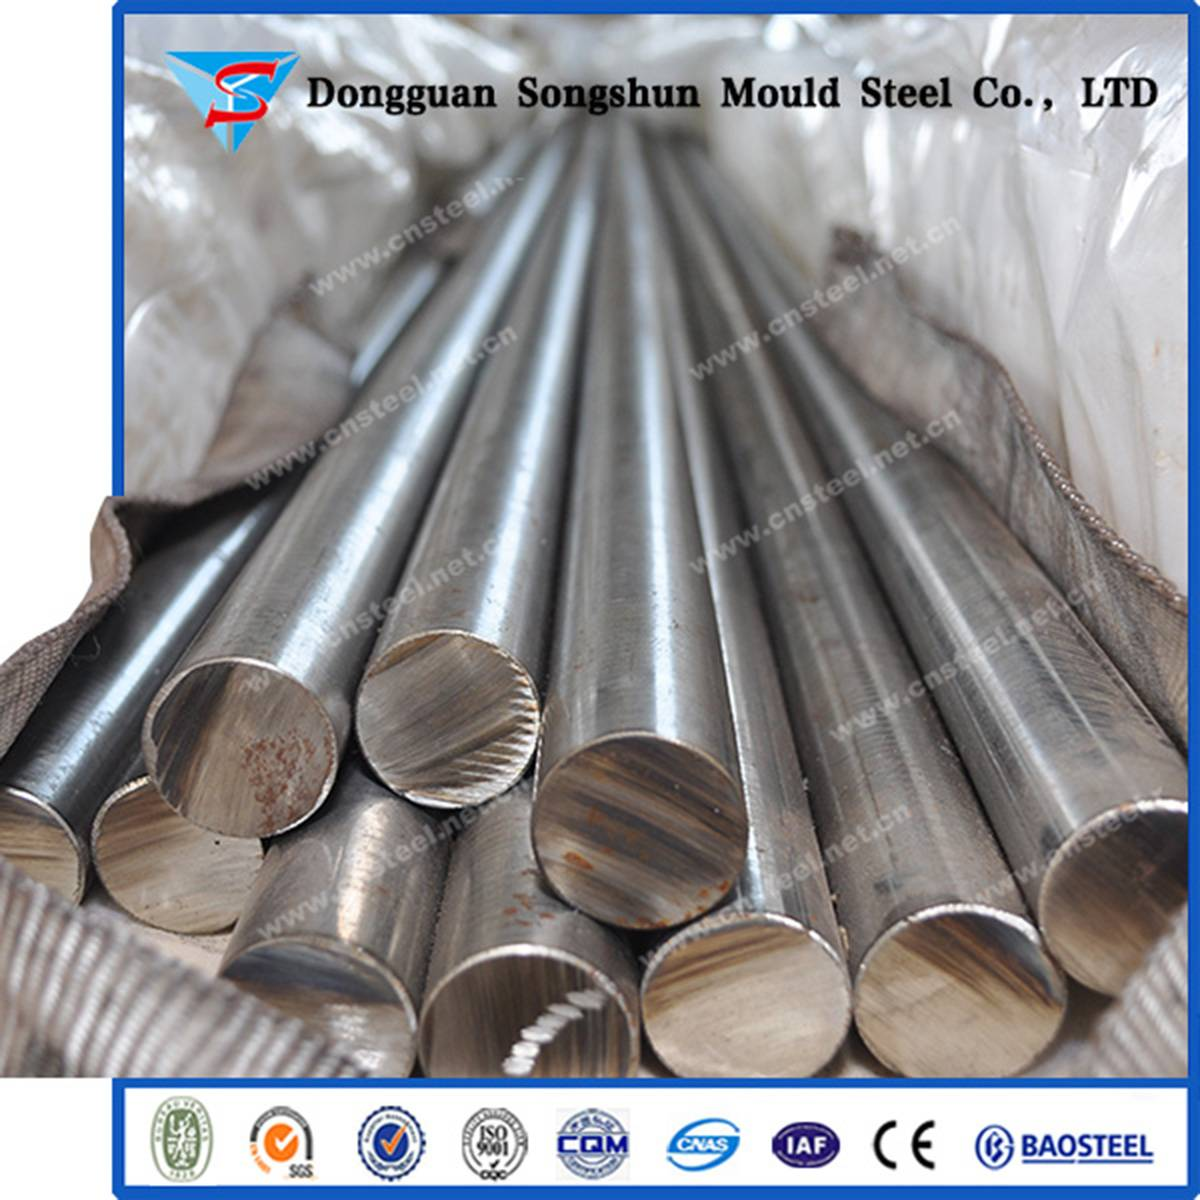 420 Plastic mould steel, 1.2083 Steel Round Bar